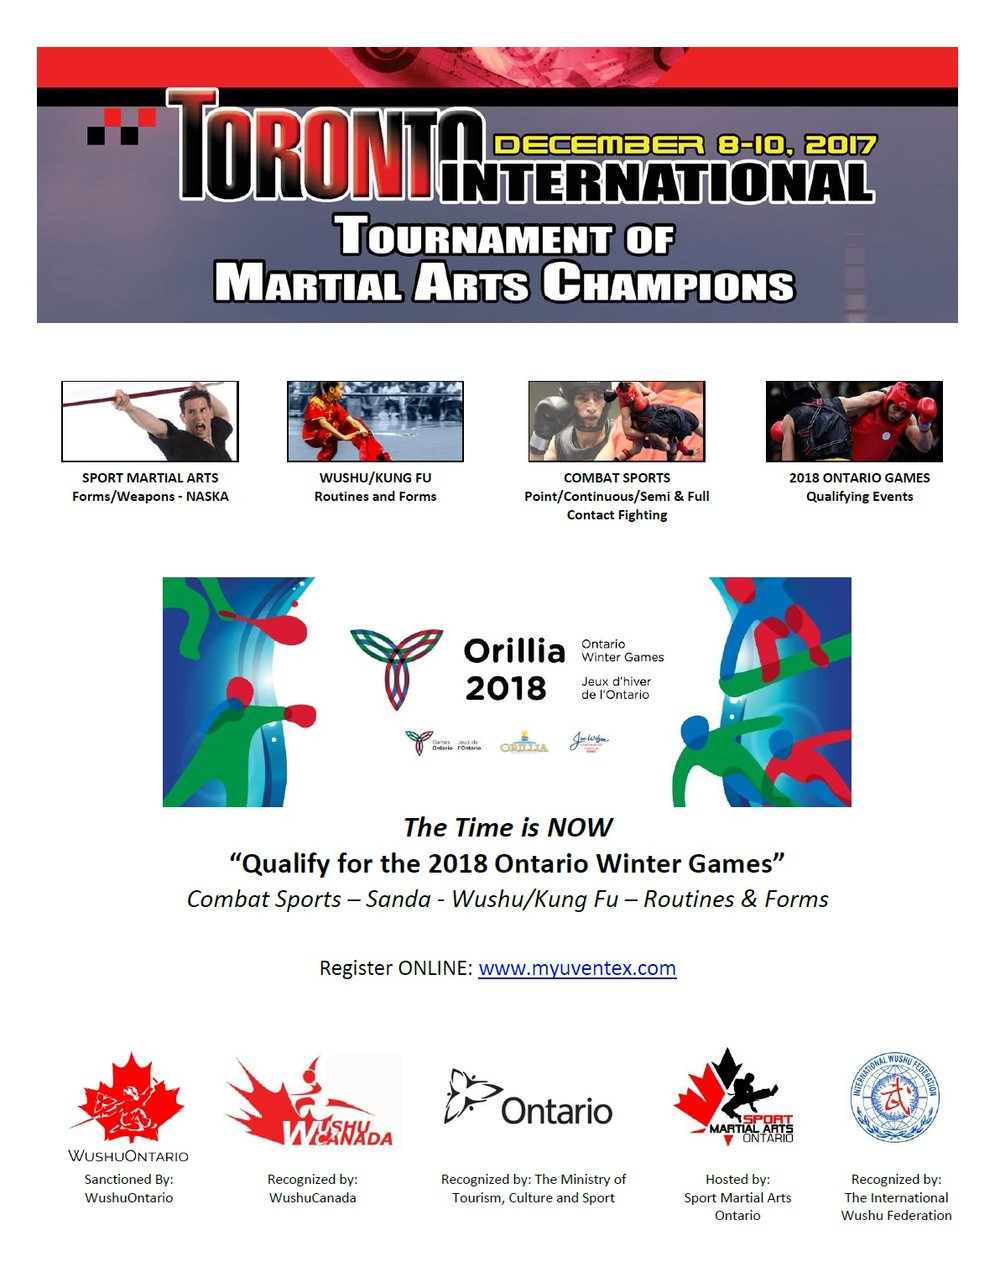 wushu-canada-ontario-toronto-international-tournament-of-martial-arts-champions-dec-2017.jpg